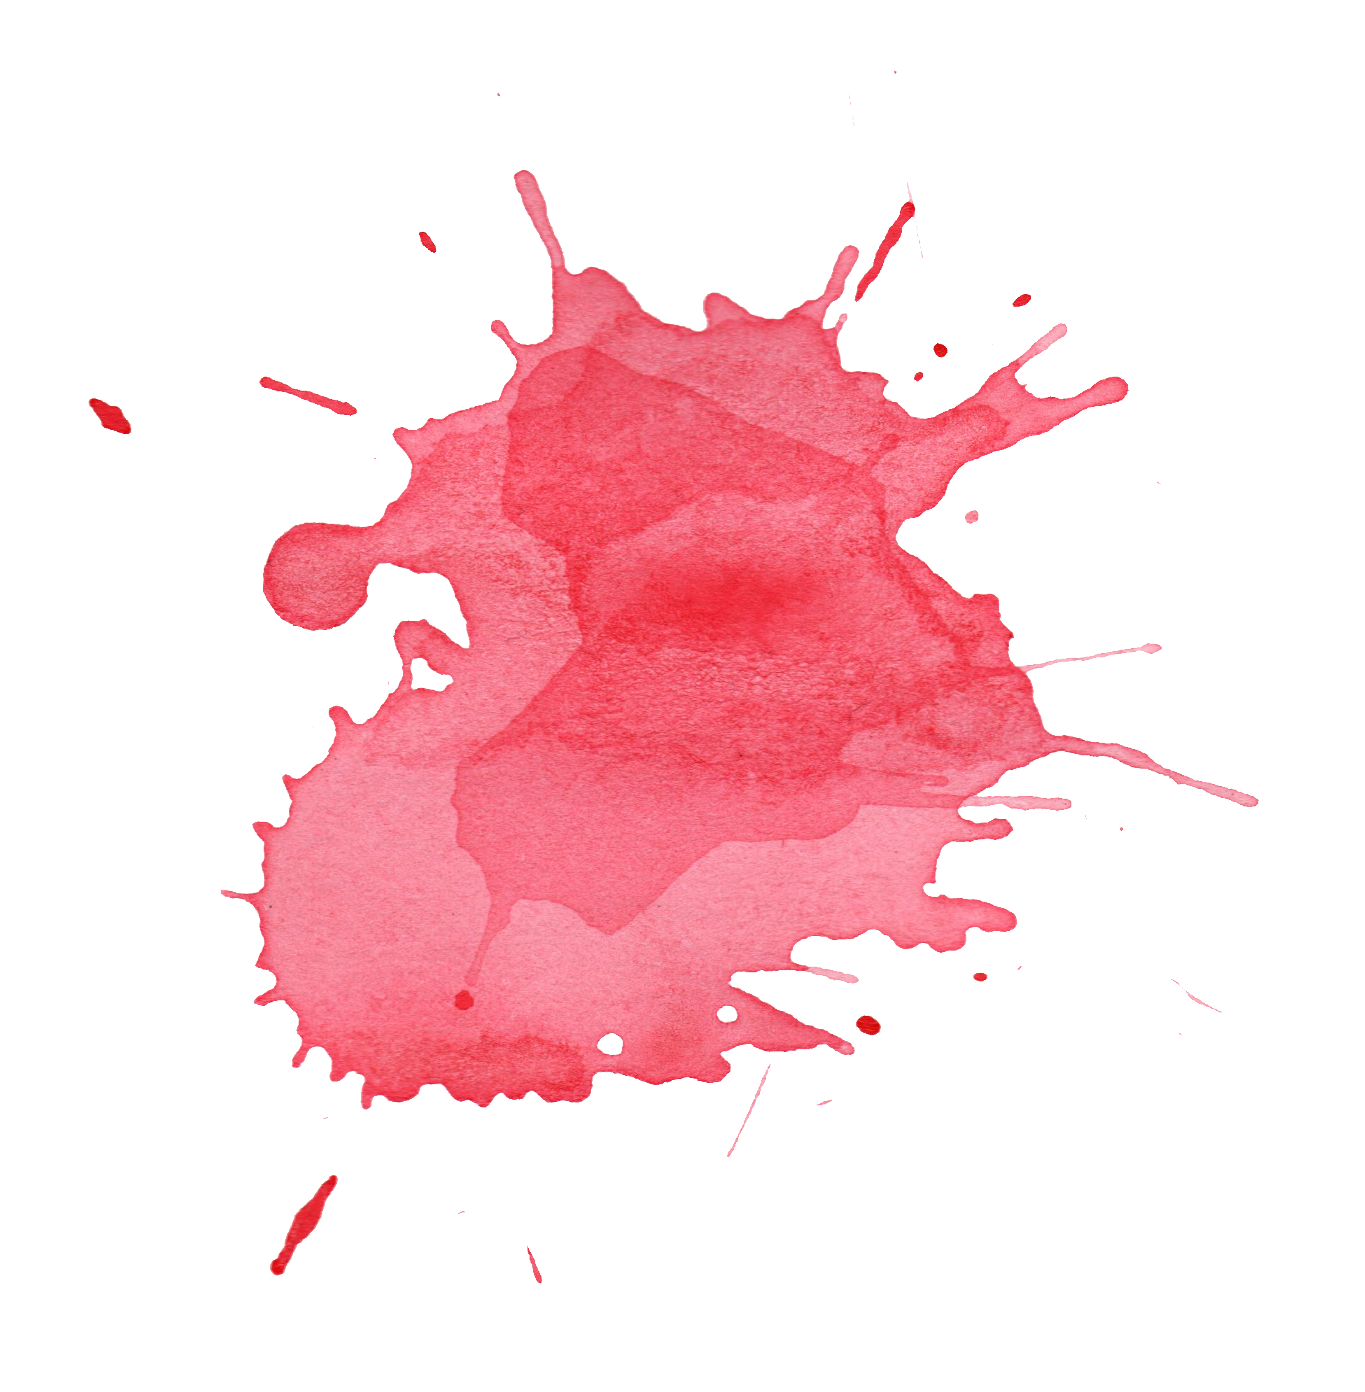 Watercolor drip texture png. Related image for yearbook